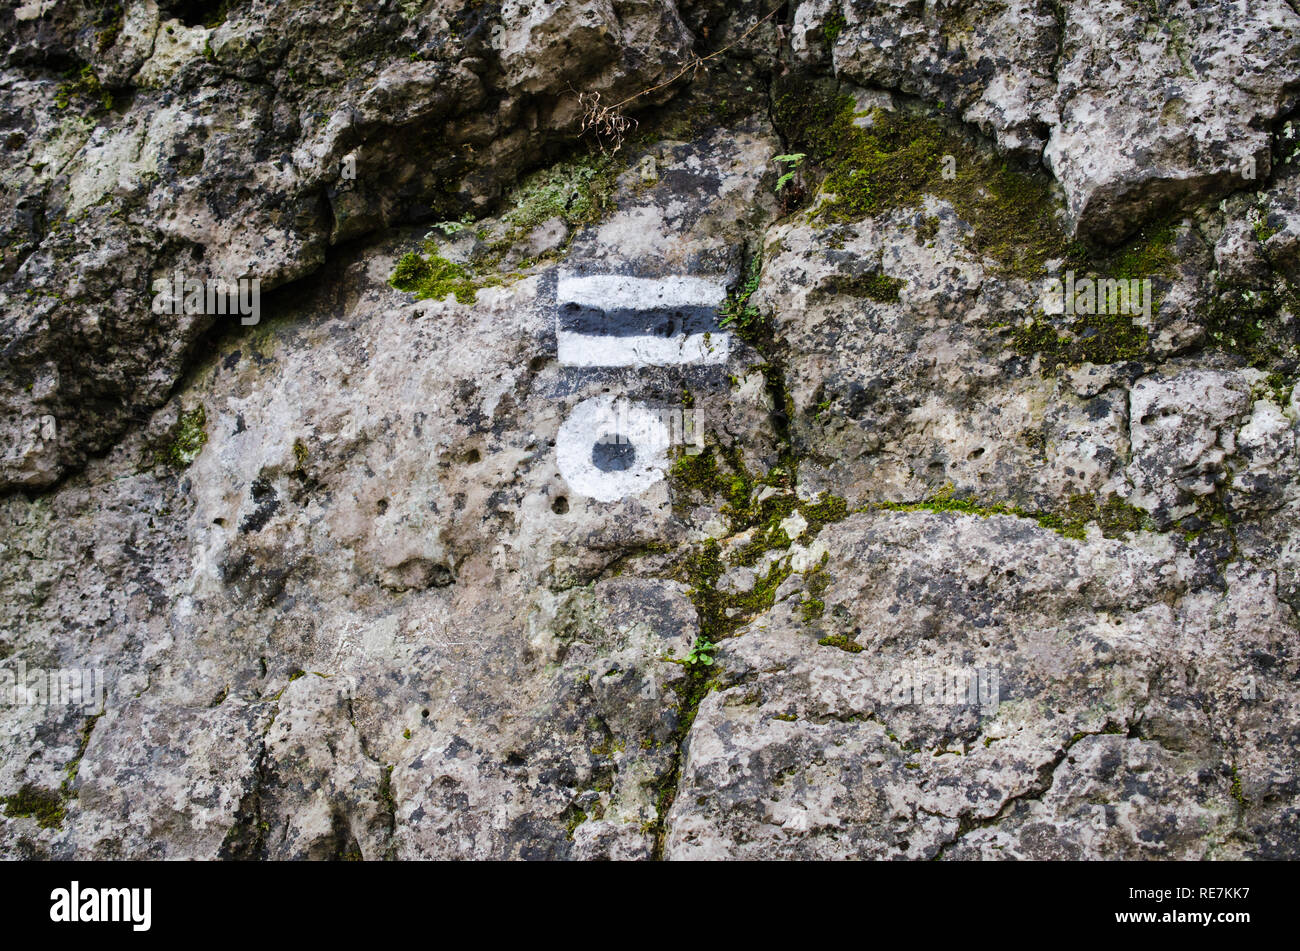 Marking the tourist route painted on the stone. Travel route sign. Season of the autumn. - Stock Image